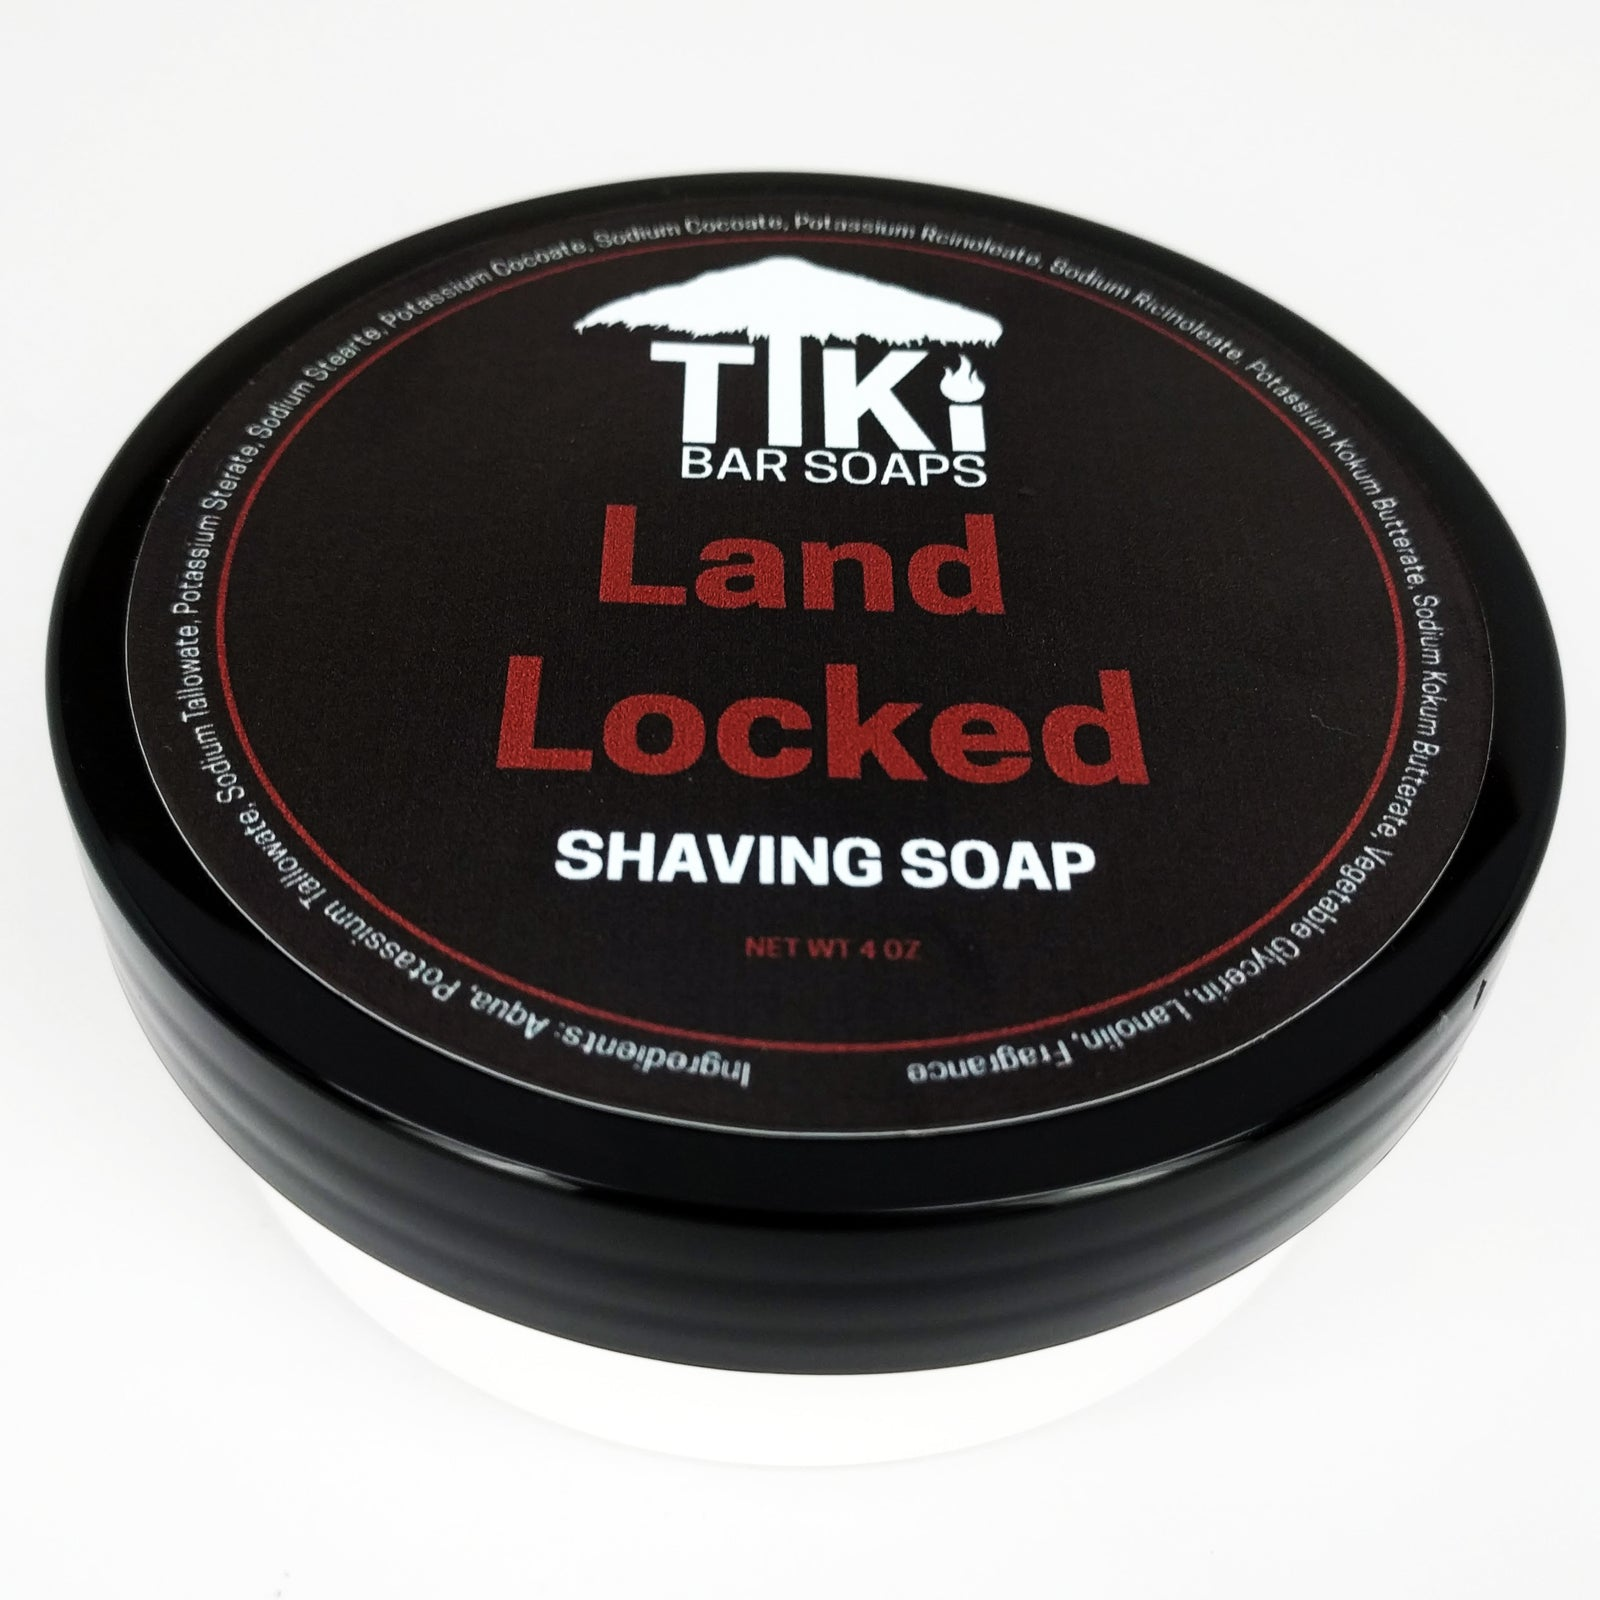 Tiki Bar Soaps - Land Locked - Tallow Shaving Soap